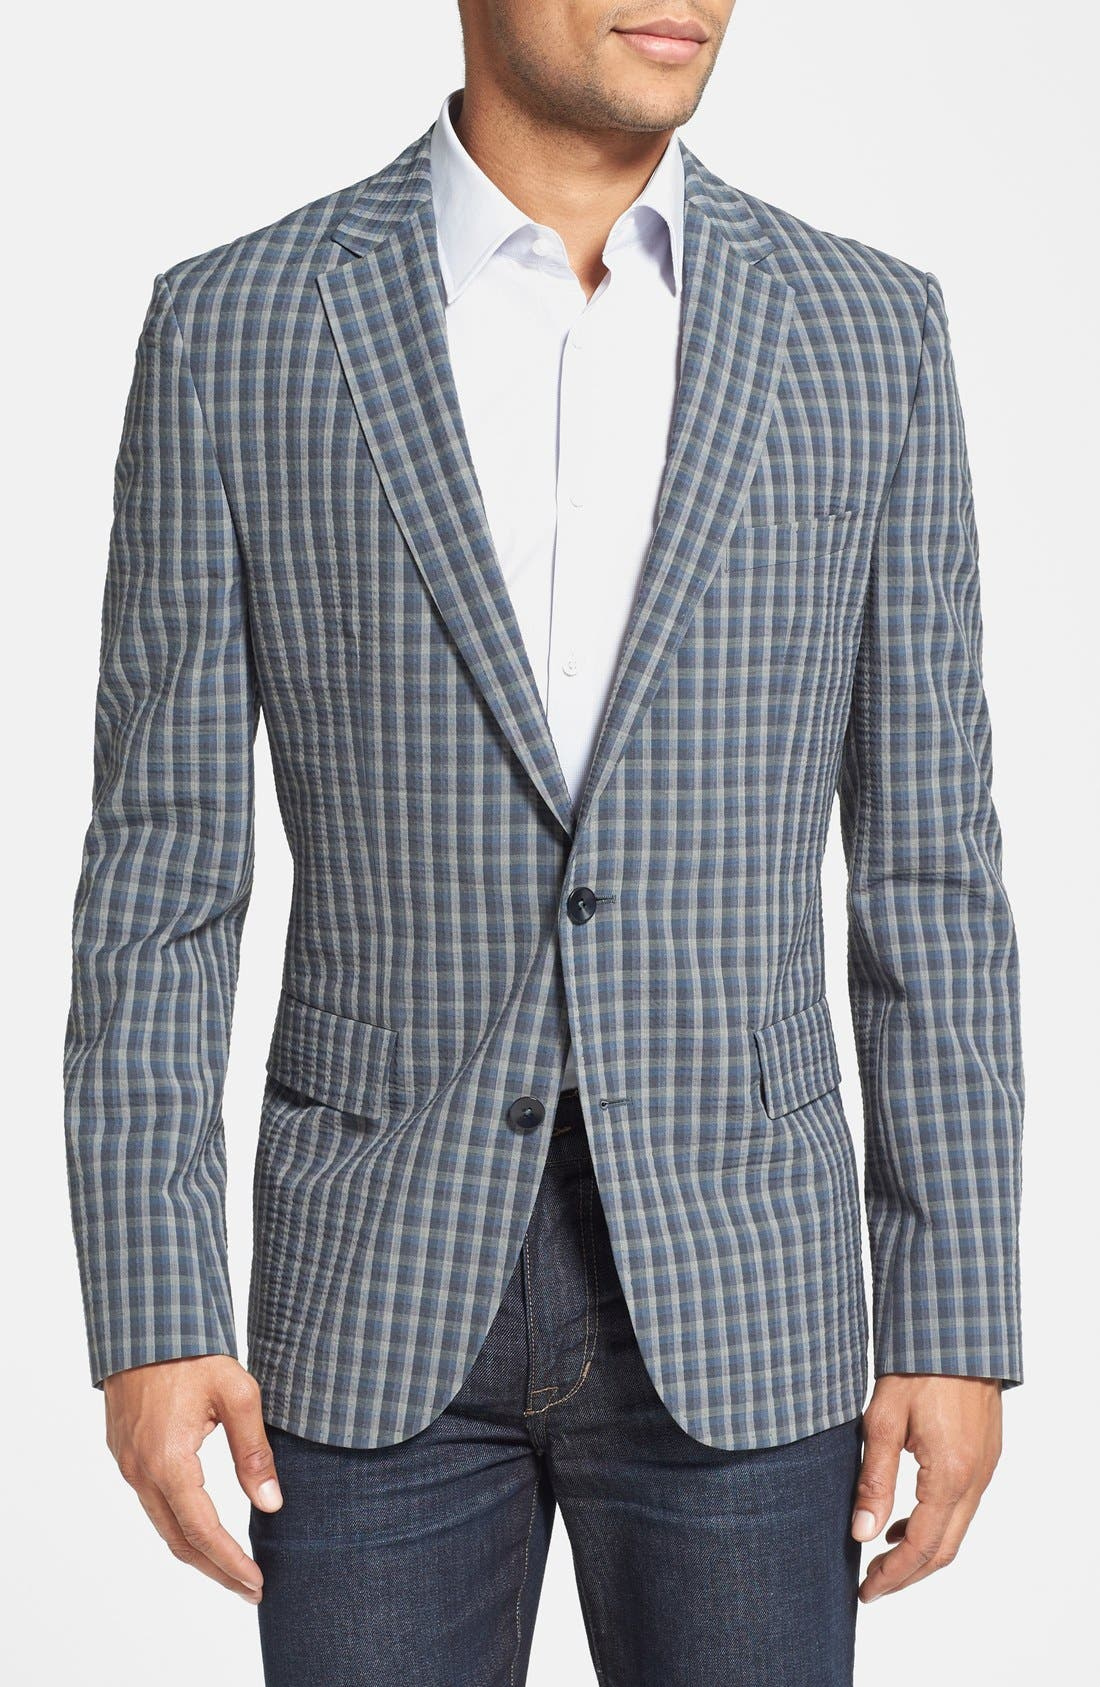 Main Image - BOSS HUGO BOSS 'Noris' Trim Fit Plaid Sport Coat